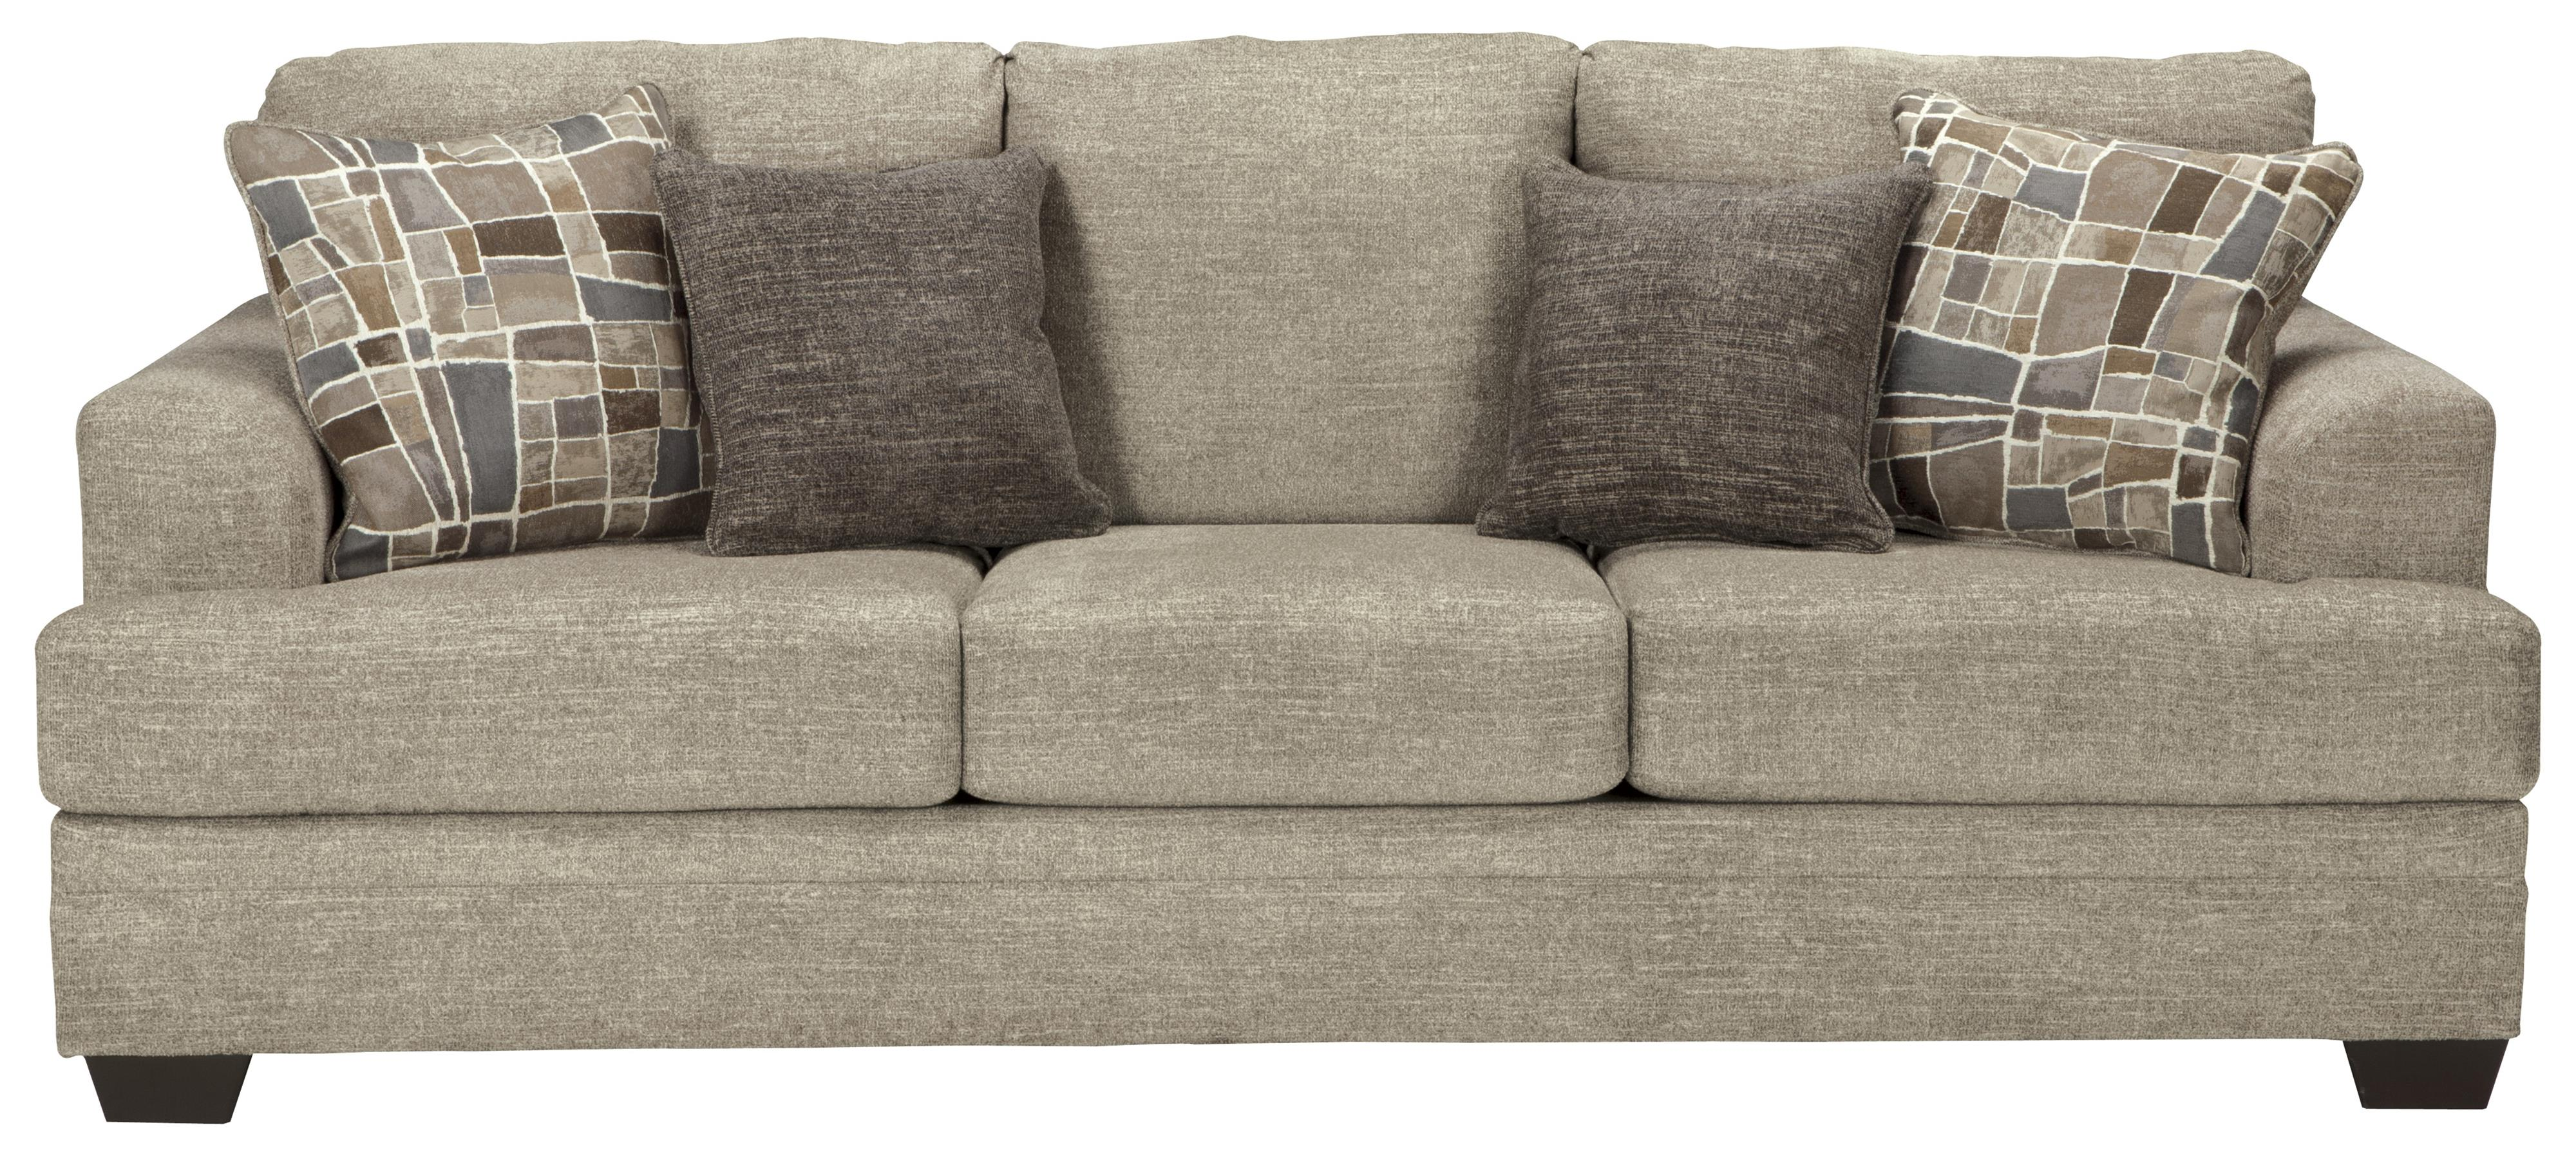 Superieur Benchcraft Barrish Queen Sofa Sleeper   Item Number: 4850139